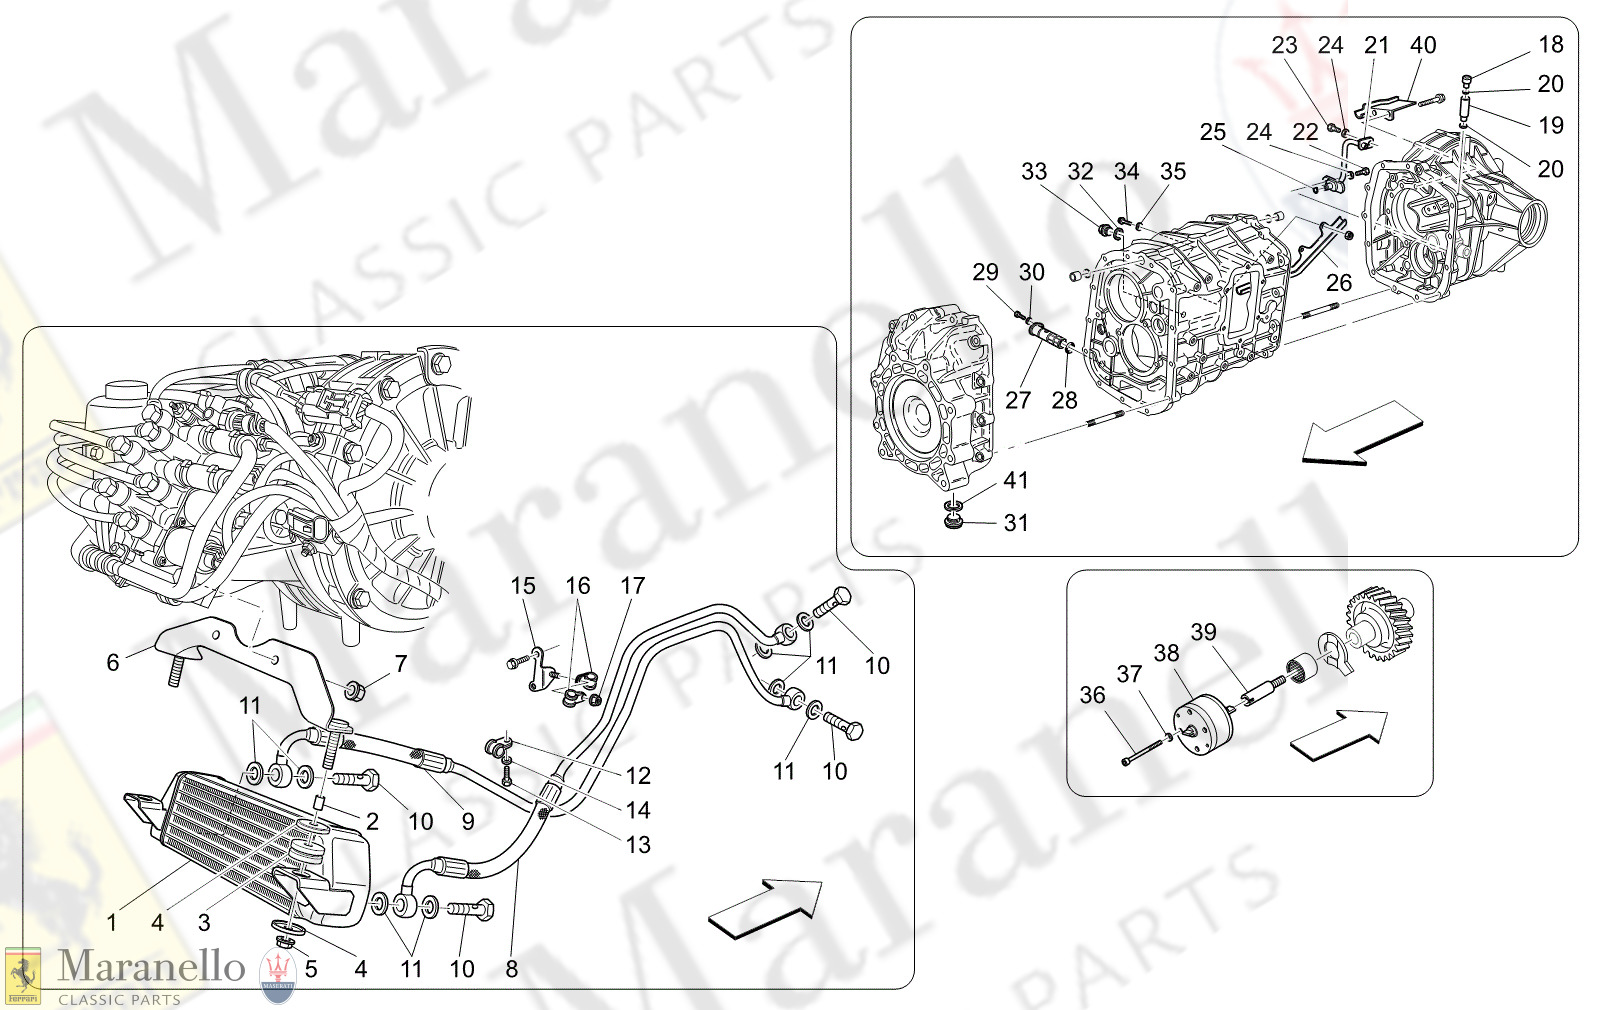 03.50 - 11 - 0350 - 11 Lubrication And Gearbox Oil Cooling